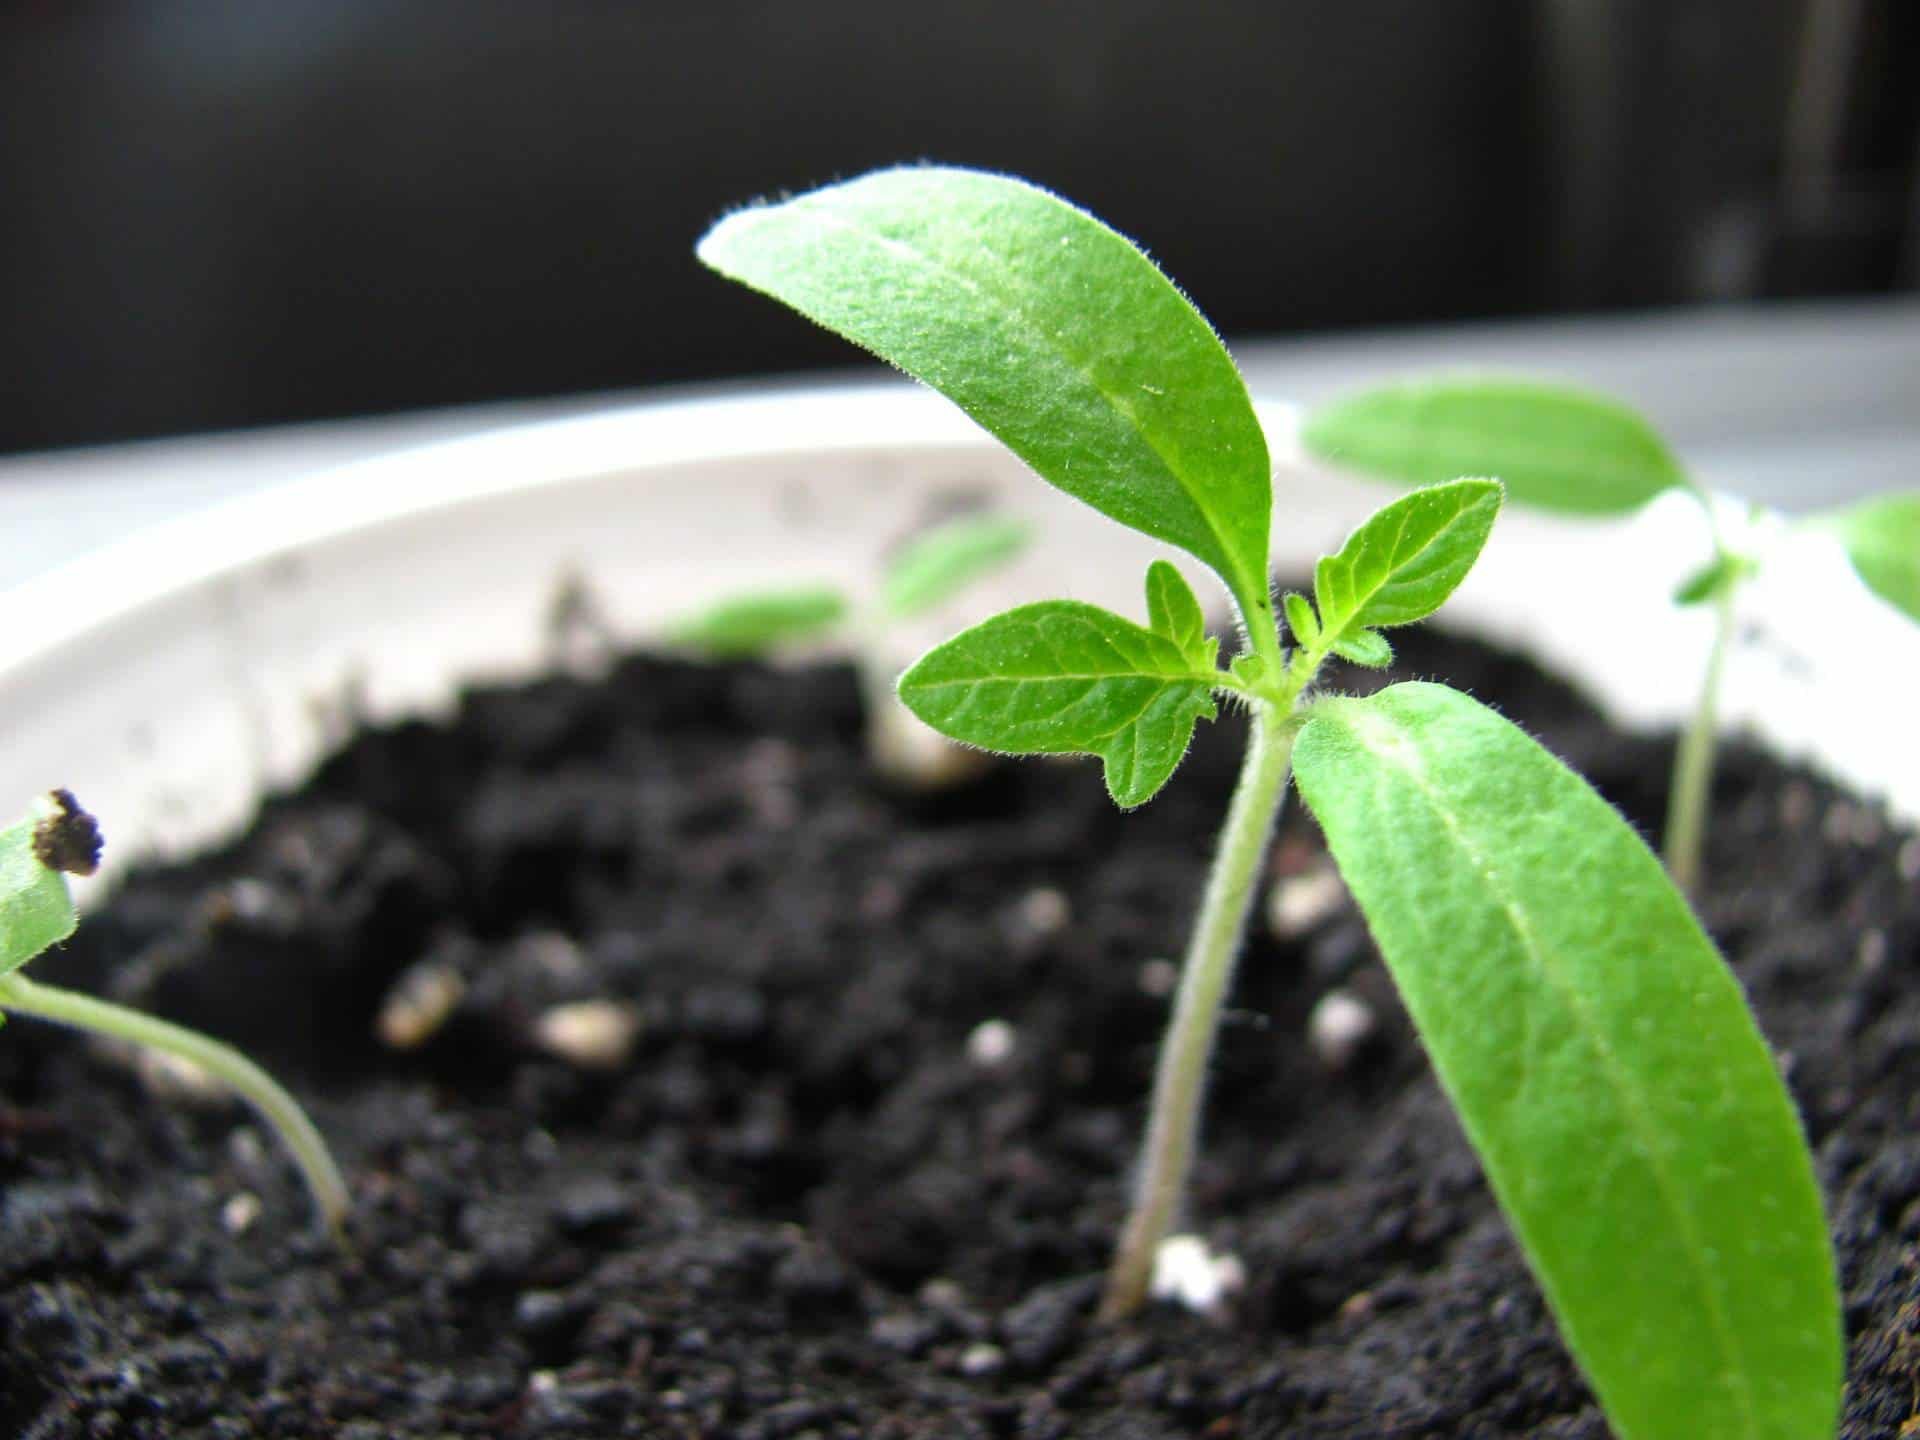 a small green plant growing in a pot